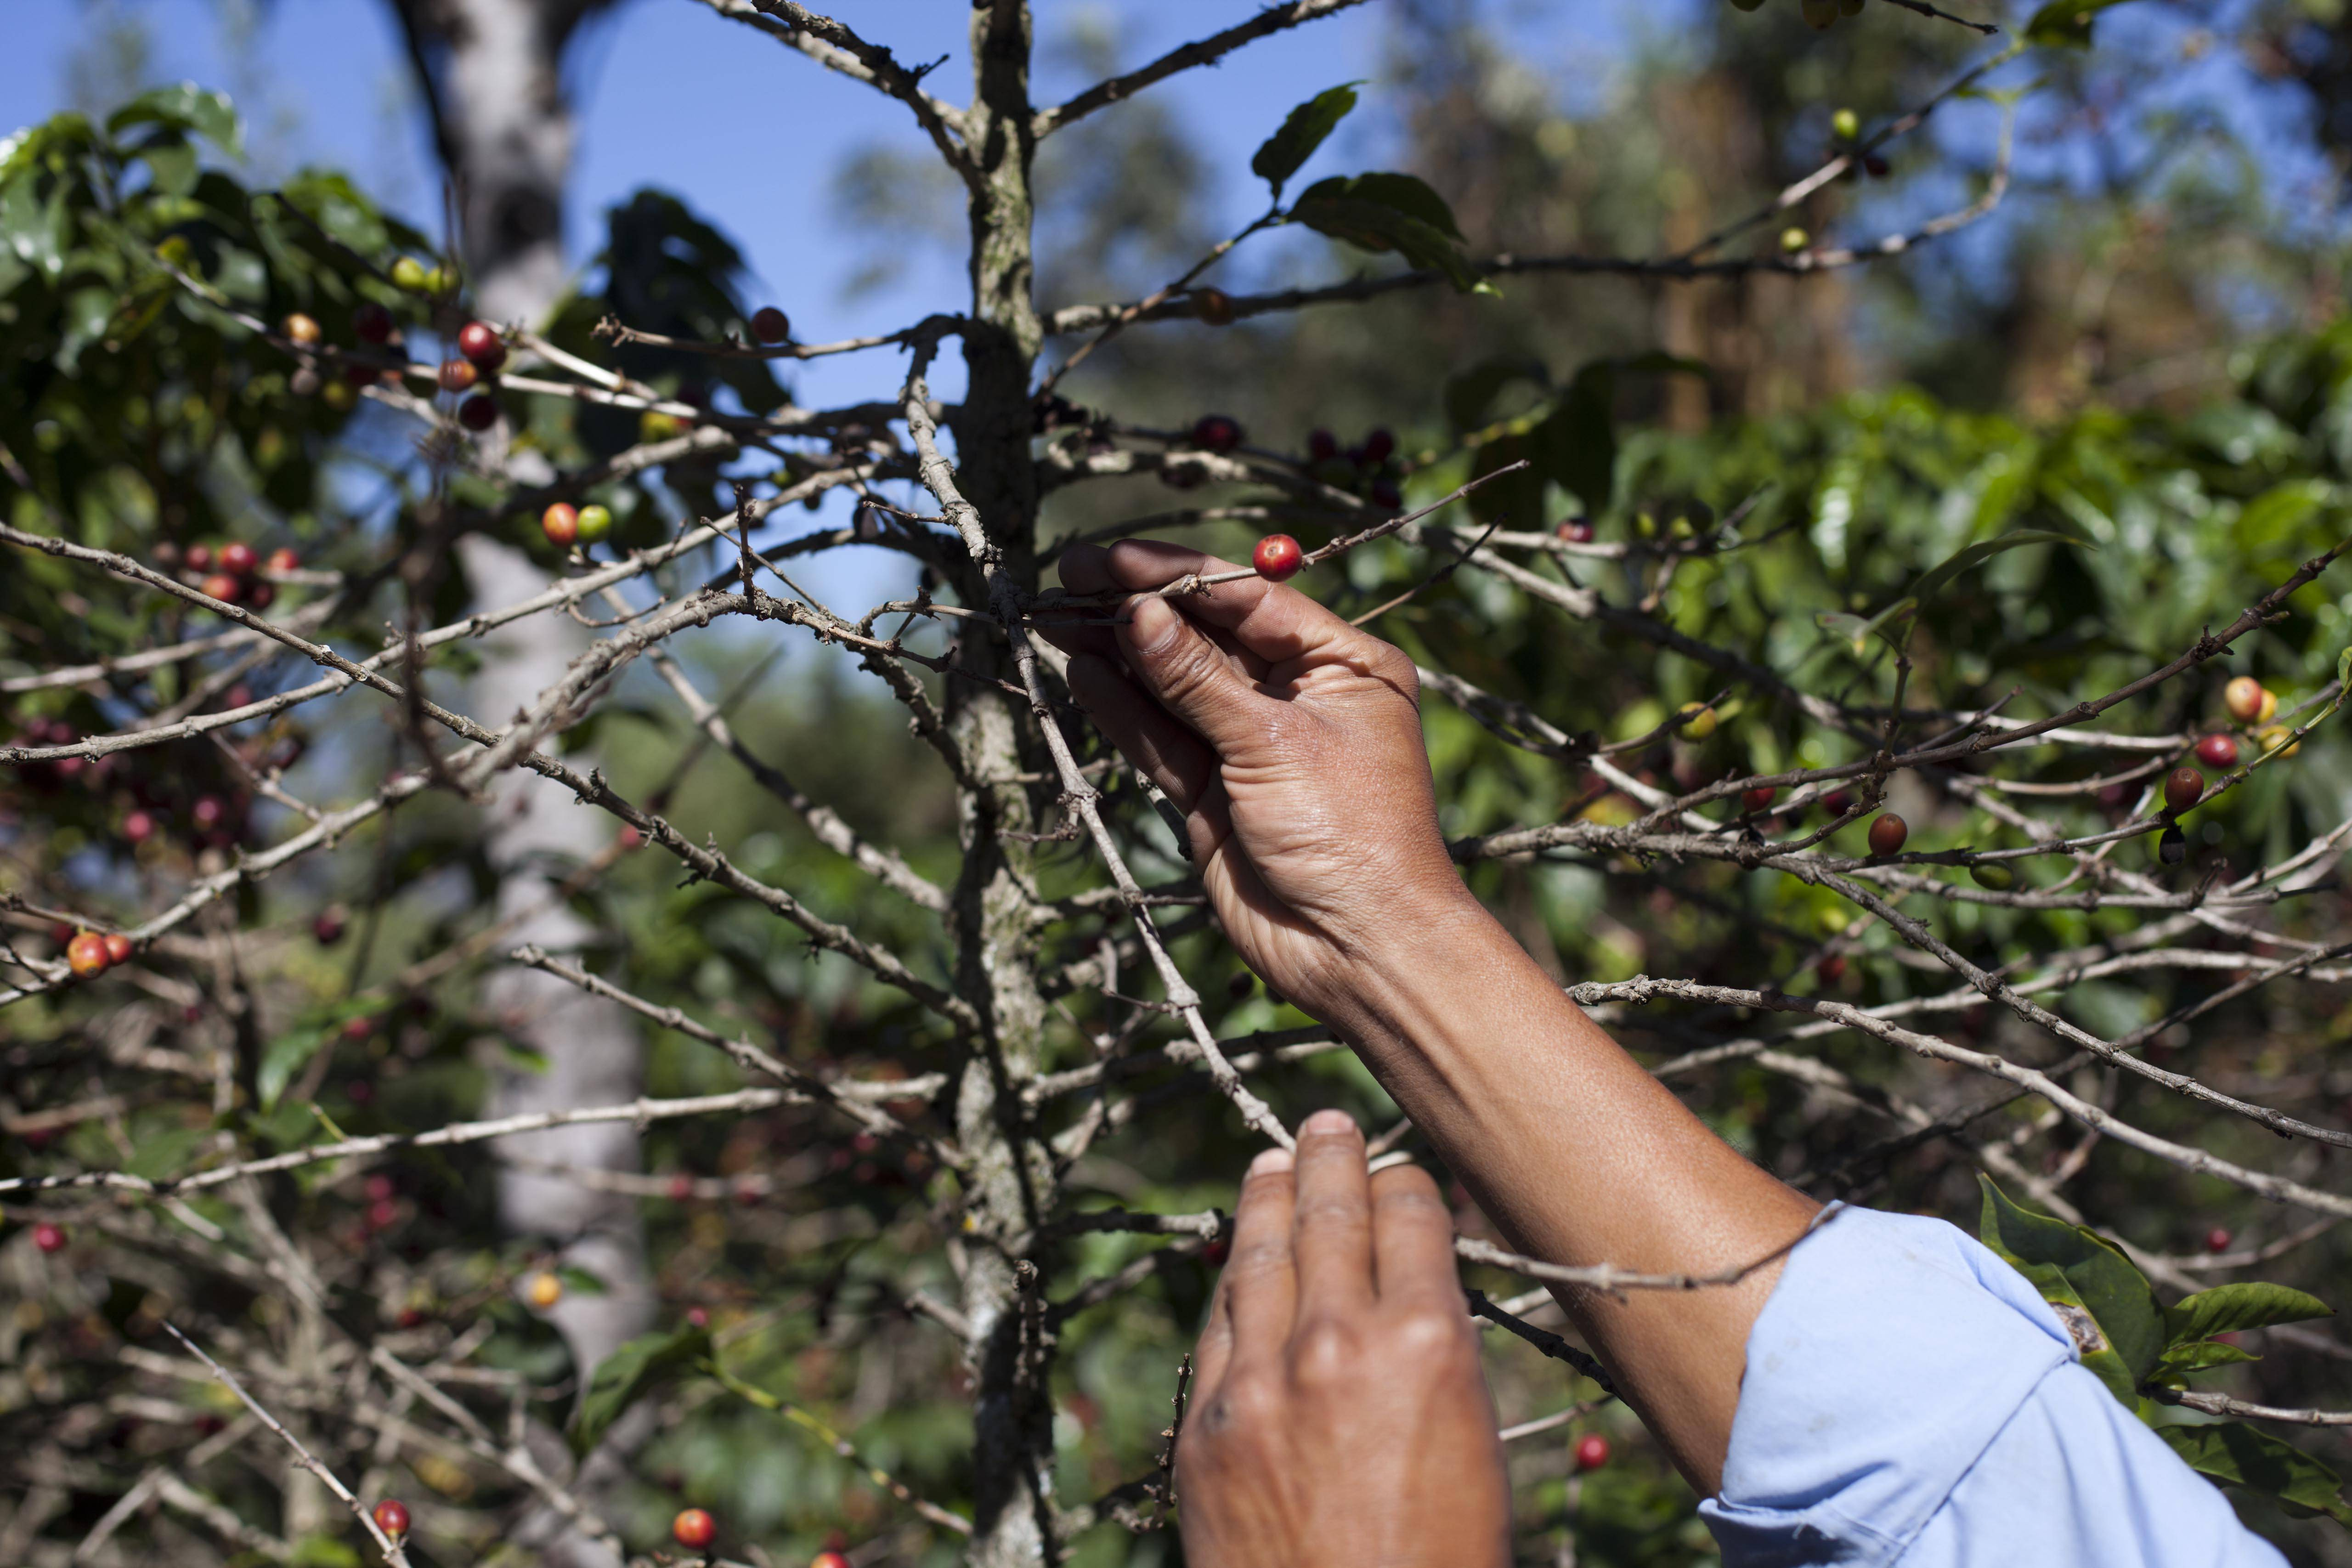 The U.S. government is stepping up efforts to help Central American farmers fight a devastating coffee disease — and to keep the price of your morning cup down.